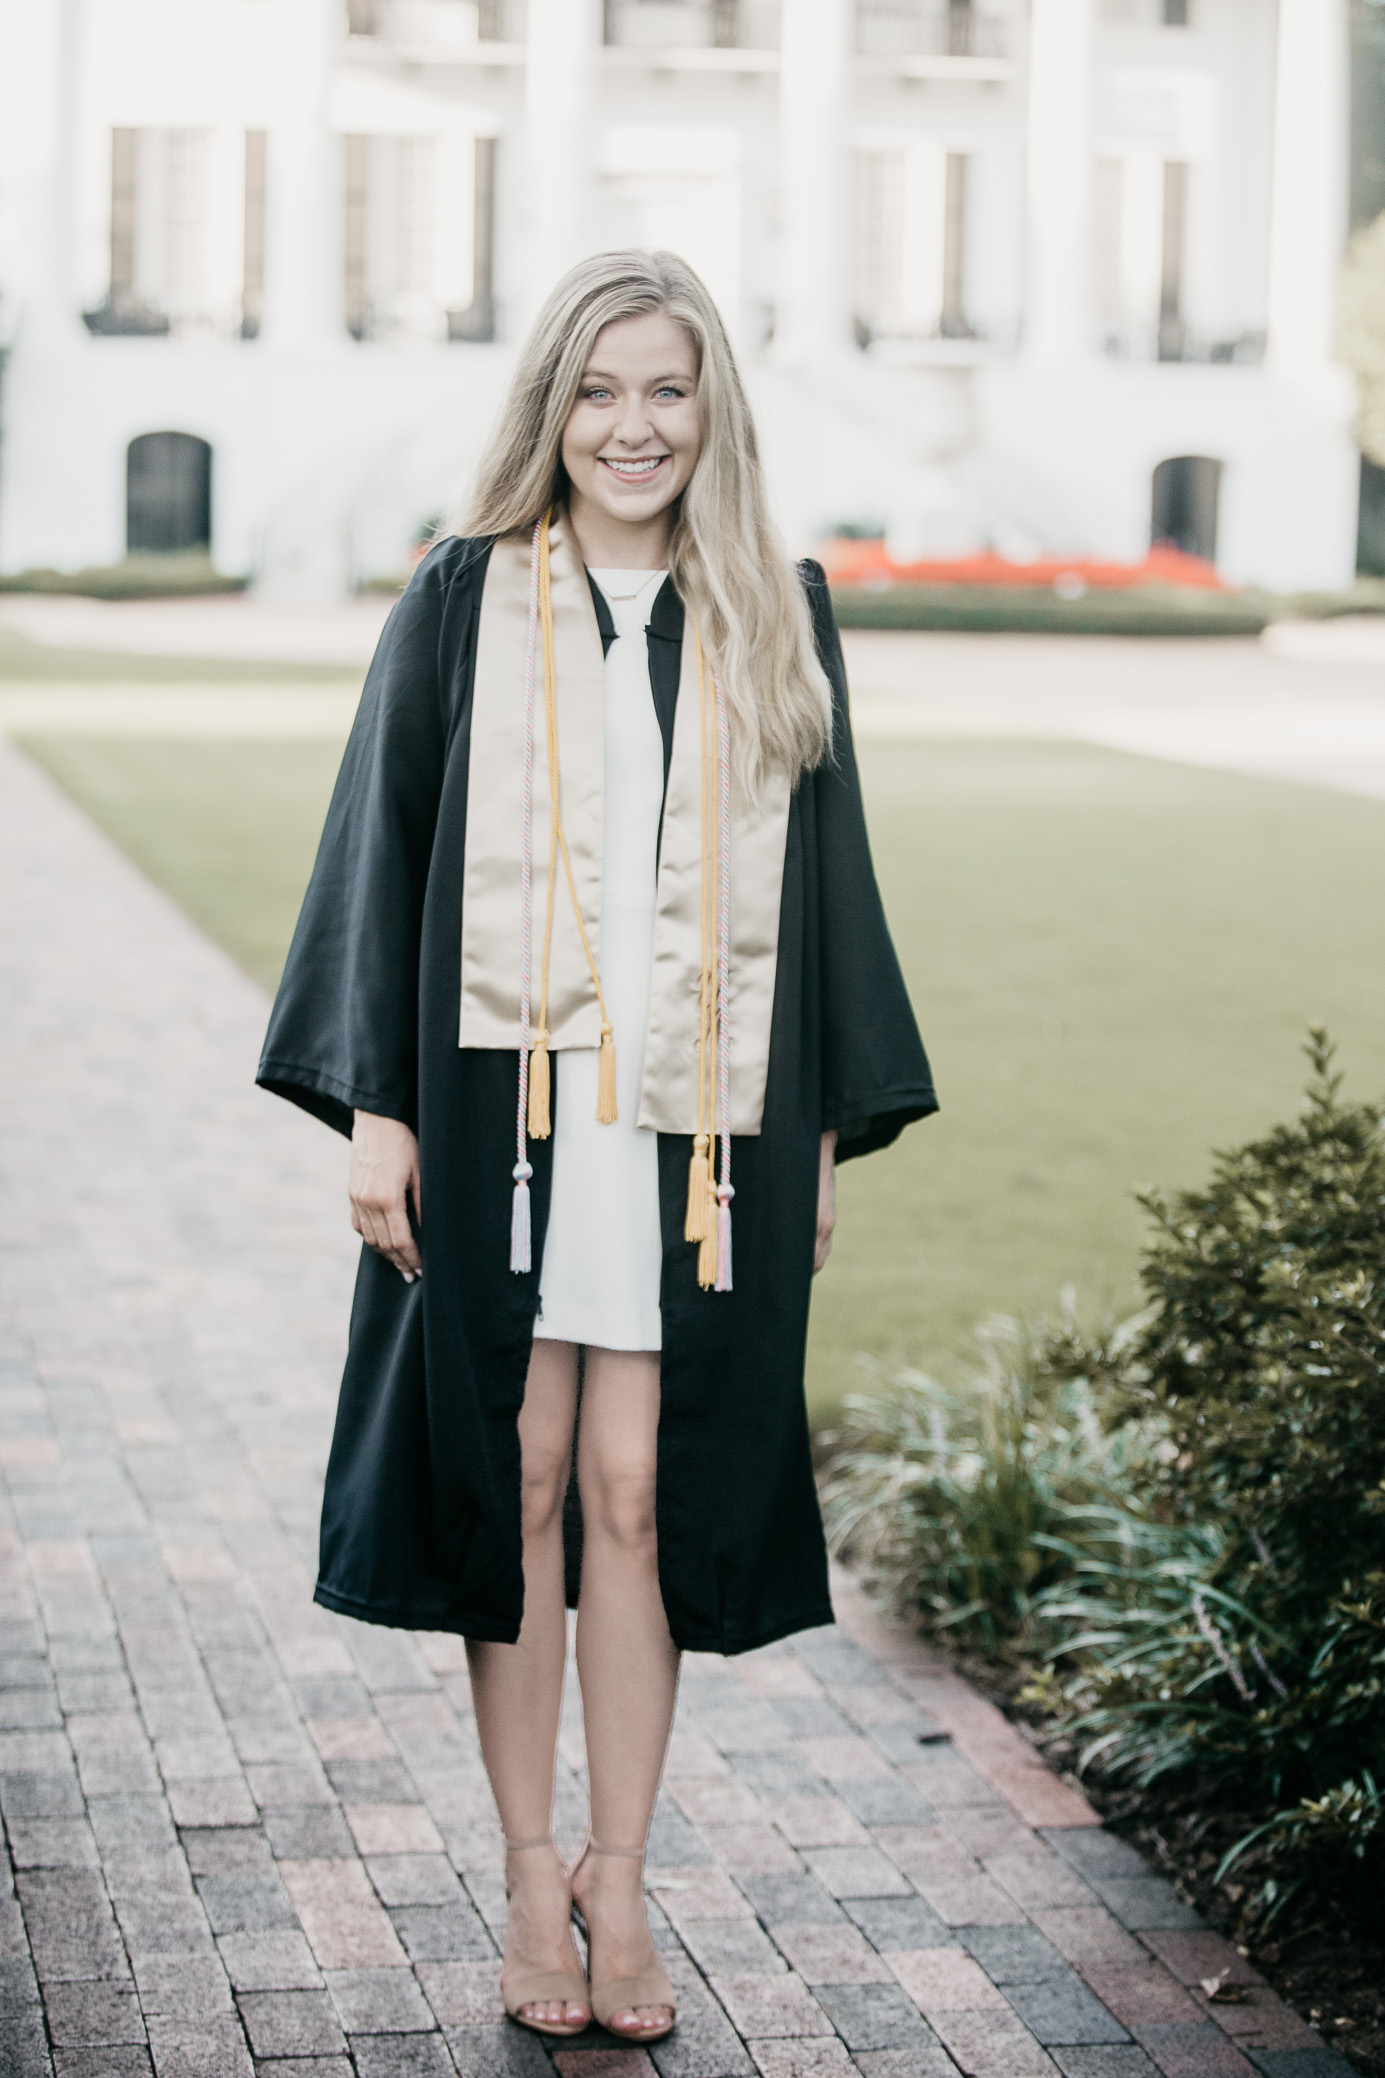 University of Alabama graduation Portraits in Tuscaloosa, Alabama on July 22nd, 2018 by David A. Smith of DSmithImages Wedding Photography, Portraits, and Events in the Birmingham, Alabama area.